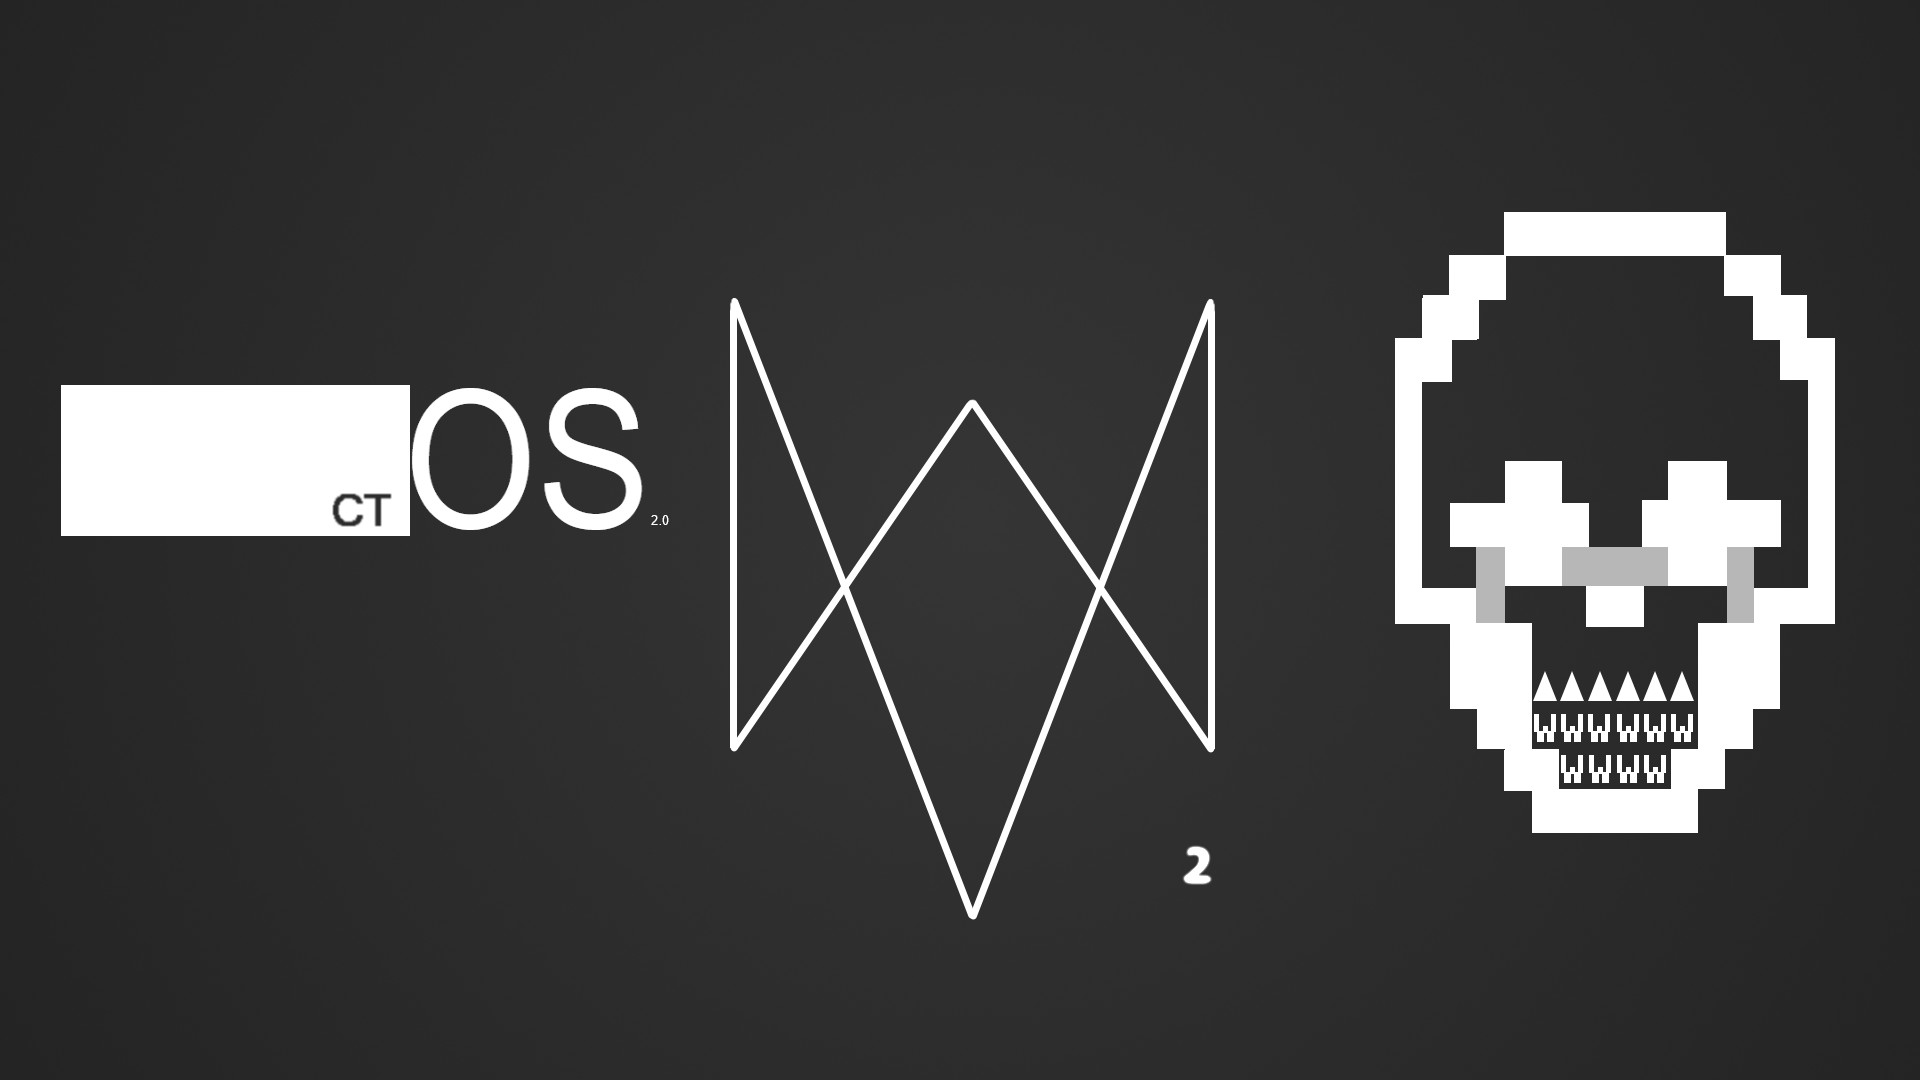 Watch Dogs 2 Minimalistic Wallpaper by MarvinForman1 Watch Dogs 2  Minimalistic Wallpaper by MarvinForman1